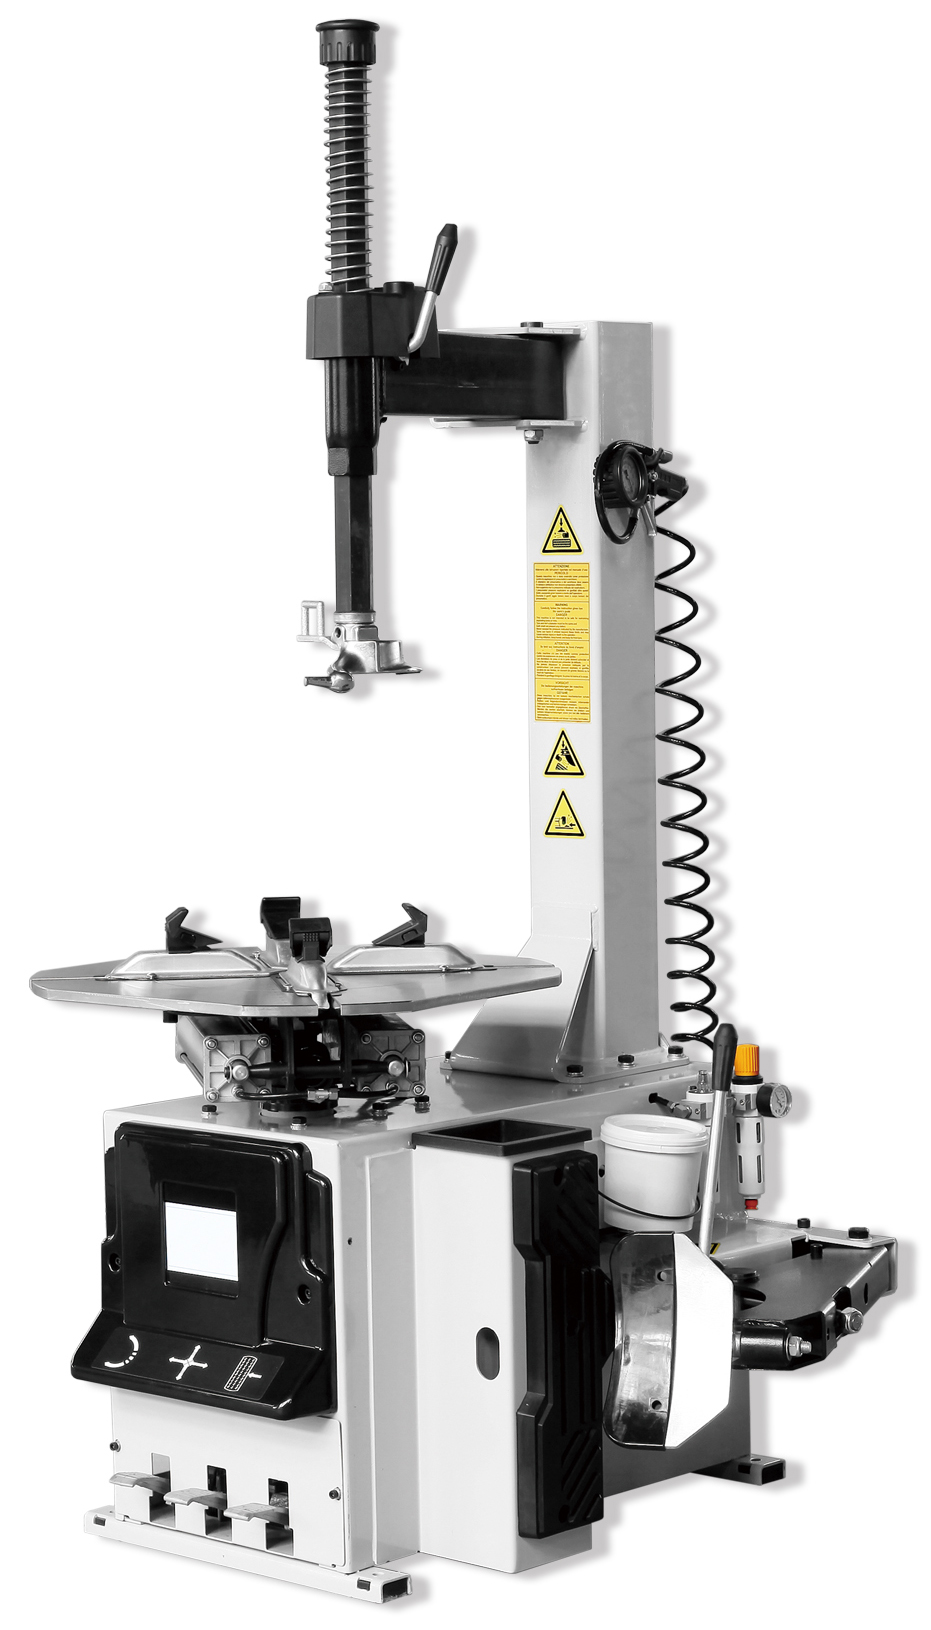 RH-620C Hot selling Reach tire changer with CE Featured Image